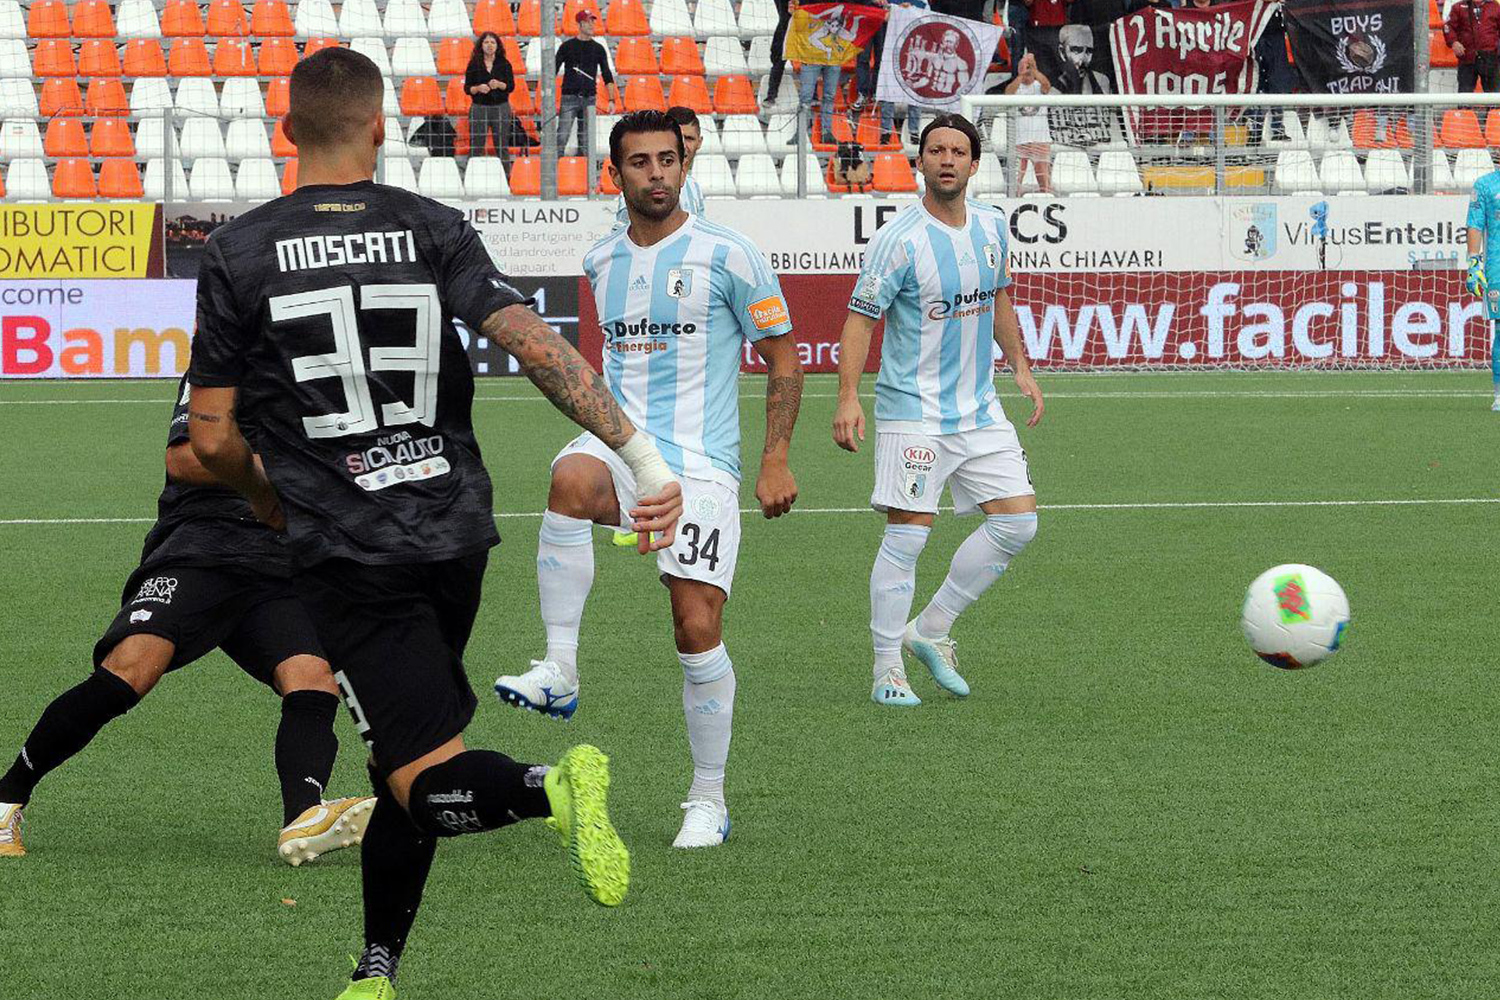 Serie B, Virtus Entella-Trapani 19/10/2019